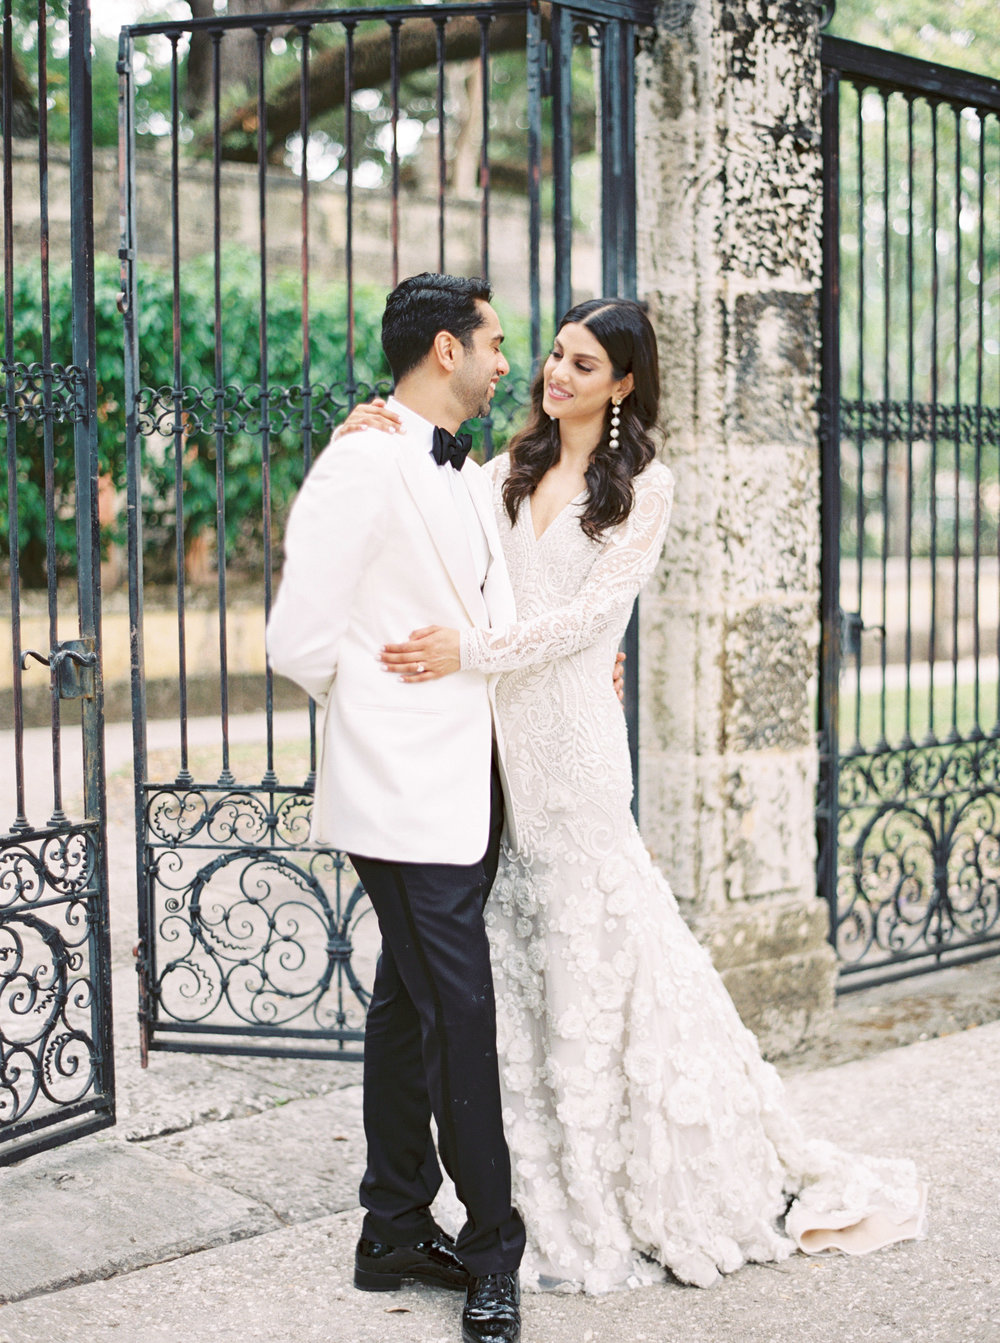 vizcaya-miami-destination-film-wedding-photographer-4429_07.jpg